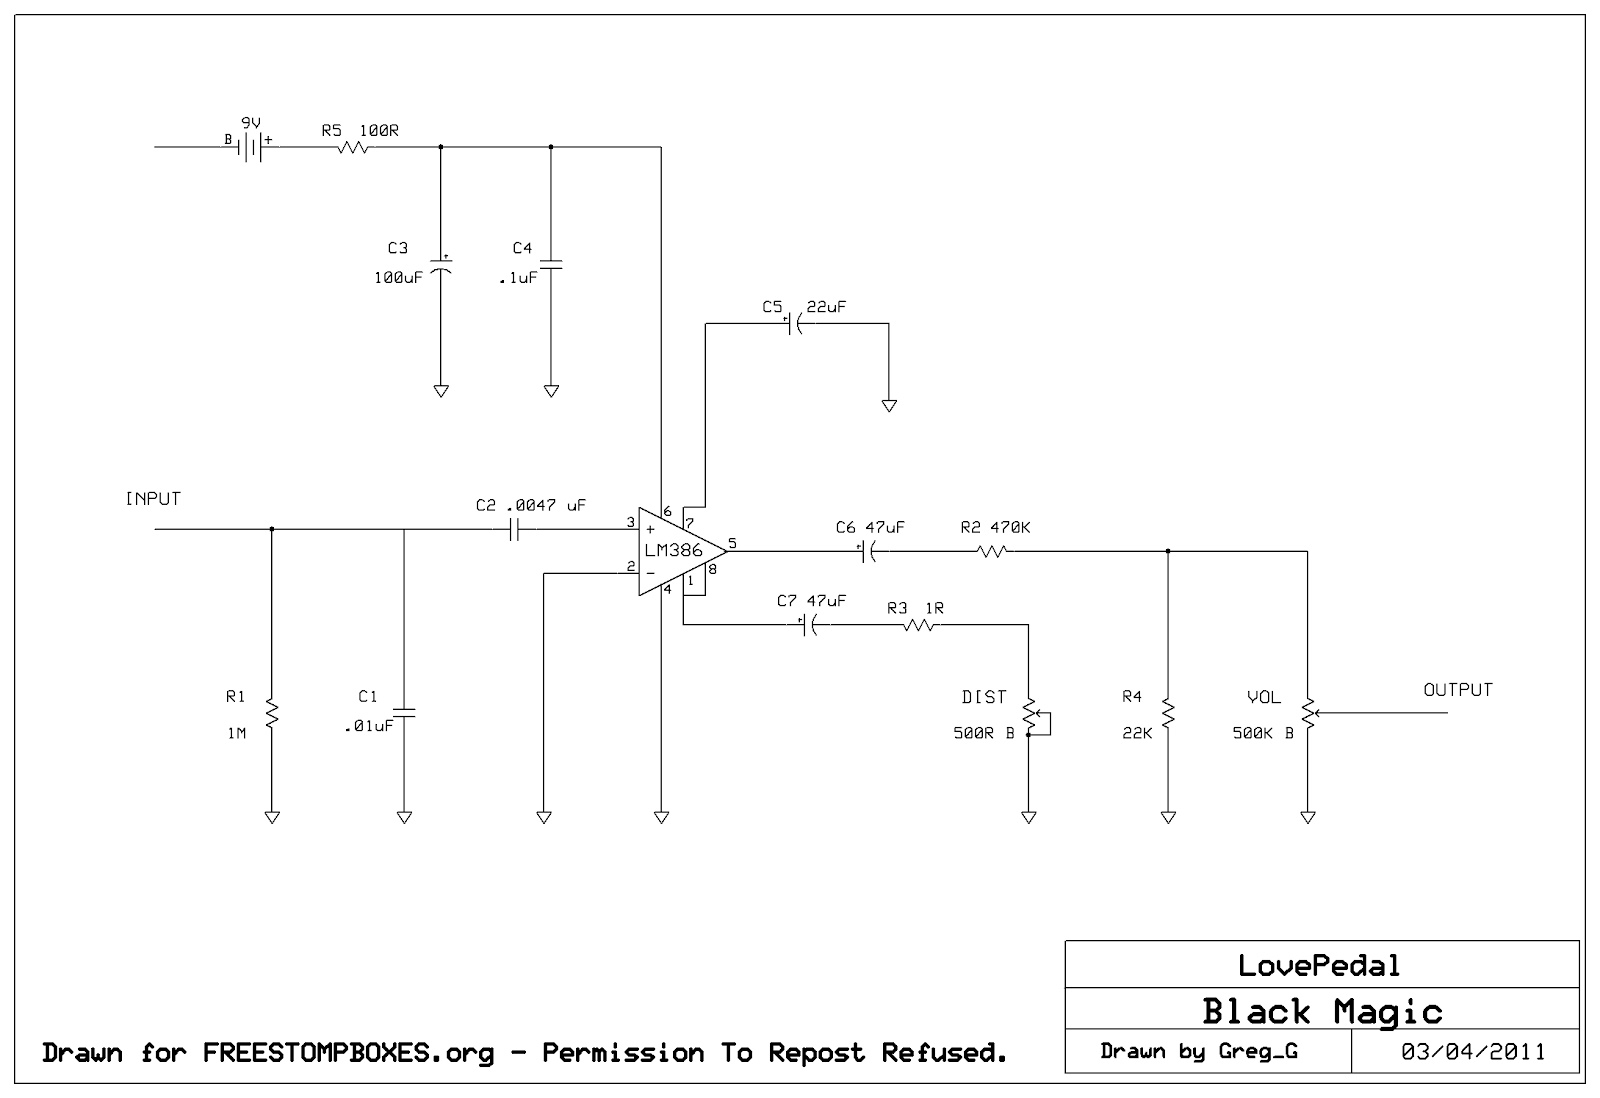 Lovepedal Black Magic Distortion La Rvolution Deux Wiring Diagram For Eddie Van Halen An Attempt To Get Some Brown Sound Tones Greg Over At Freestompboxesorg Picked One Up And Duly Traced It Out Heres The Schematic